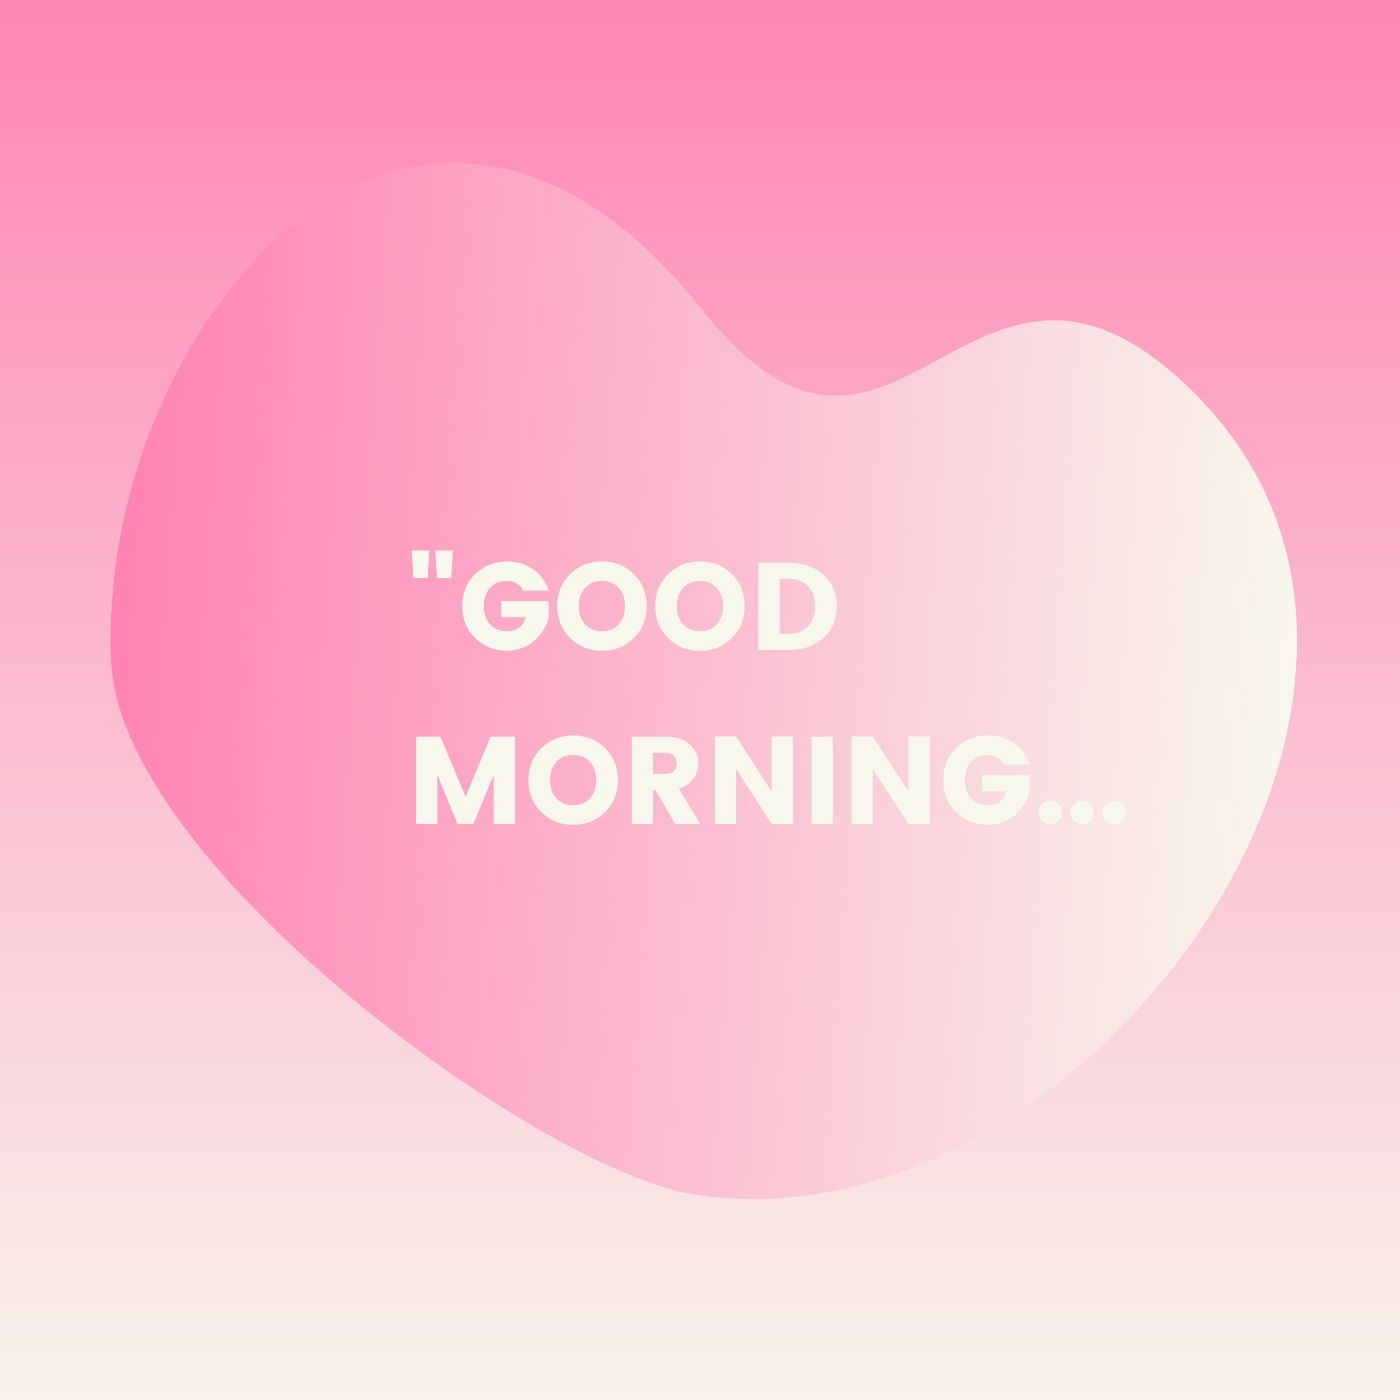 Good Morning Picture Love Heart Symbol full HD free download.